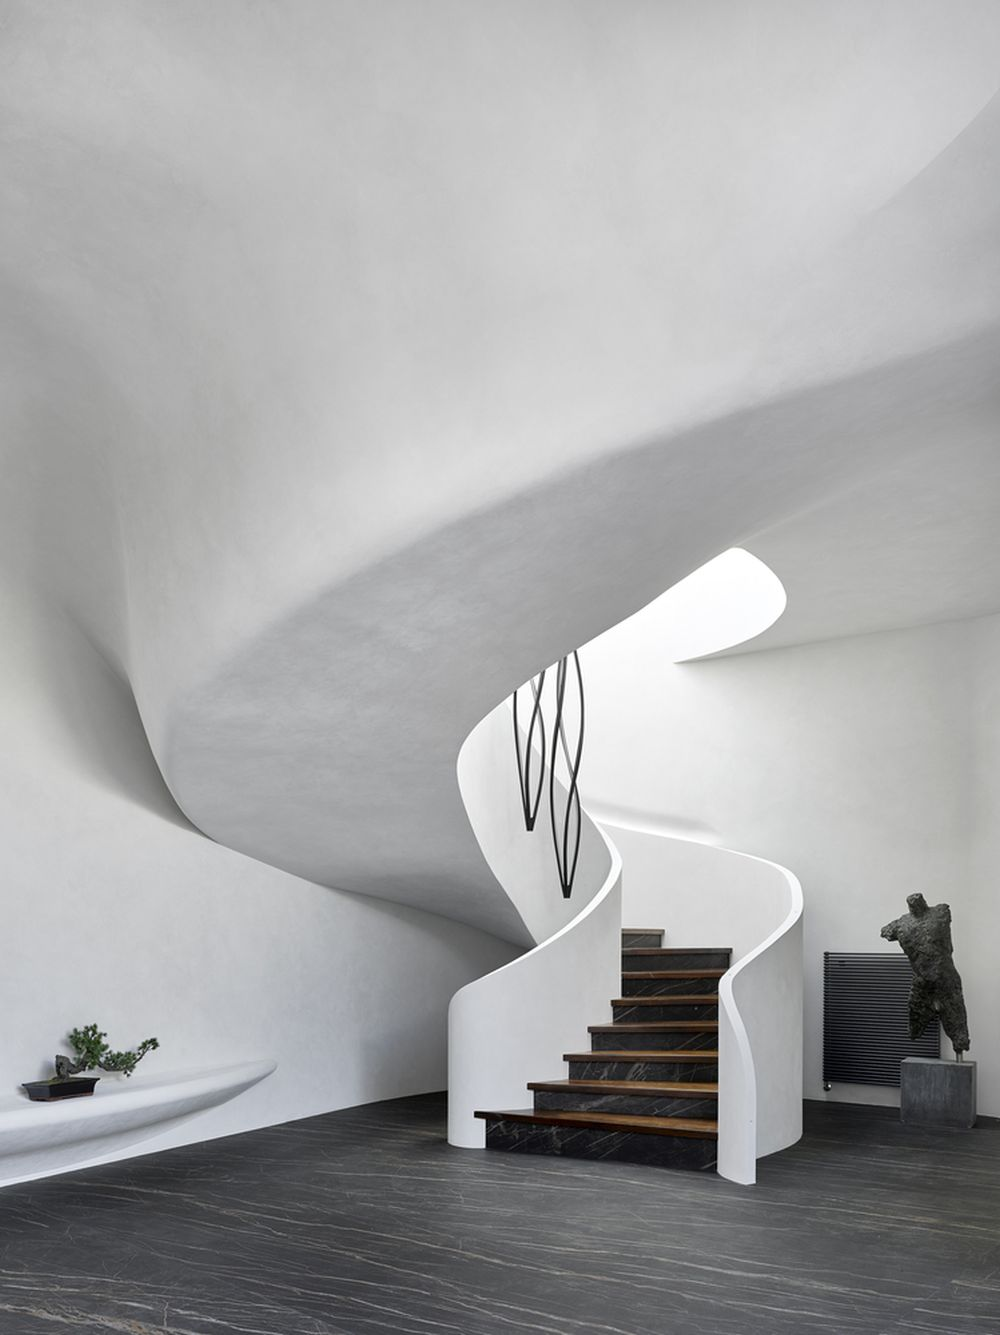 The same organic design also defines the interior of the house through lots of curves and unique forms